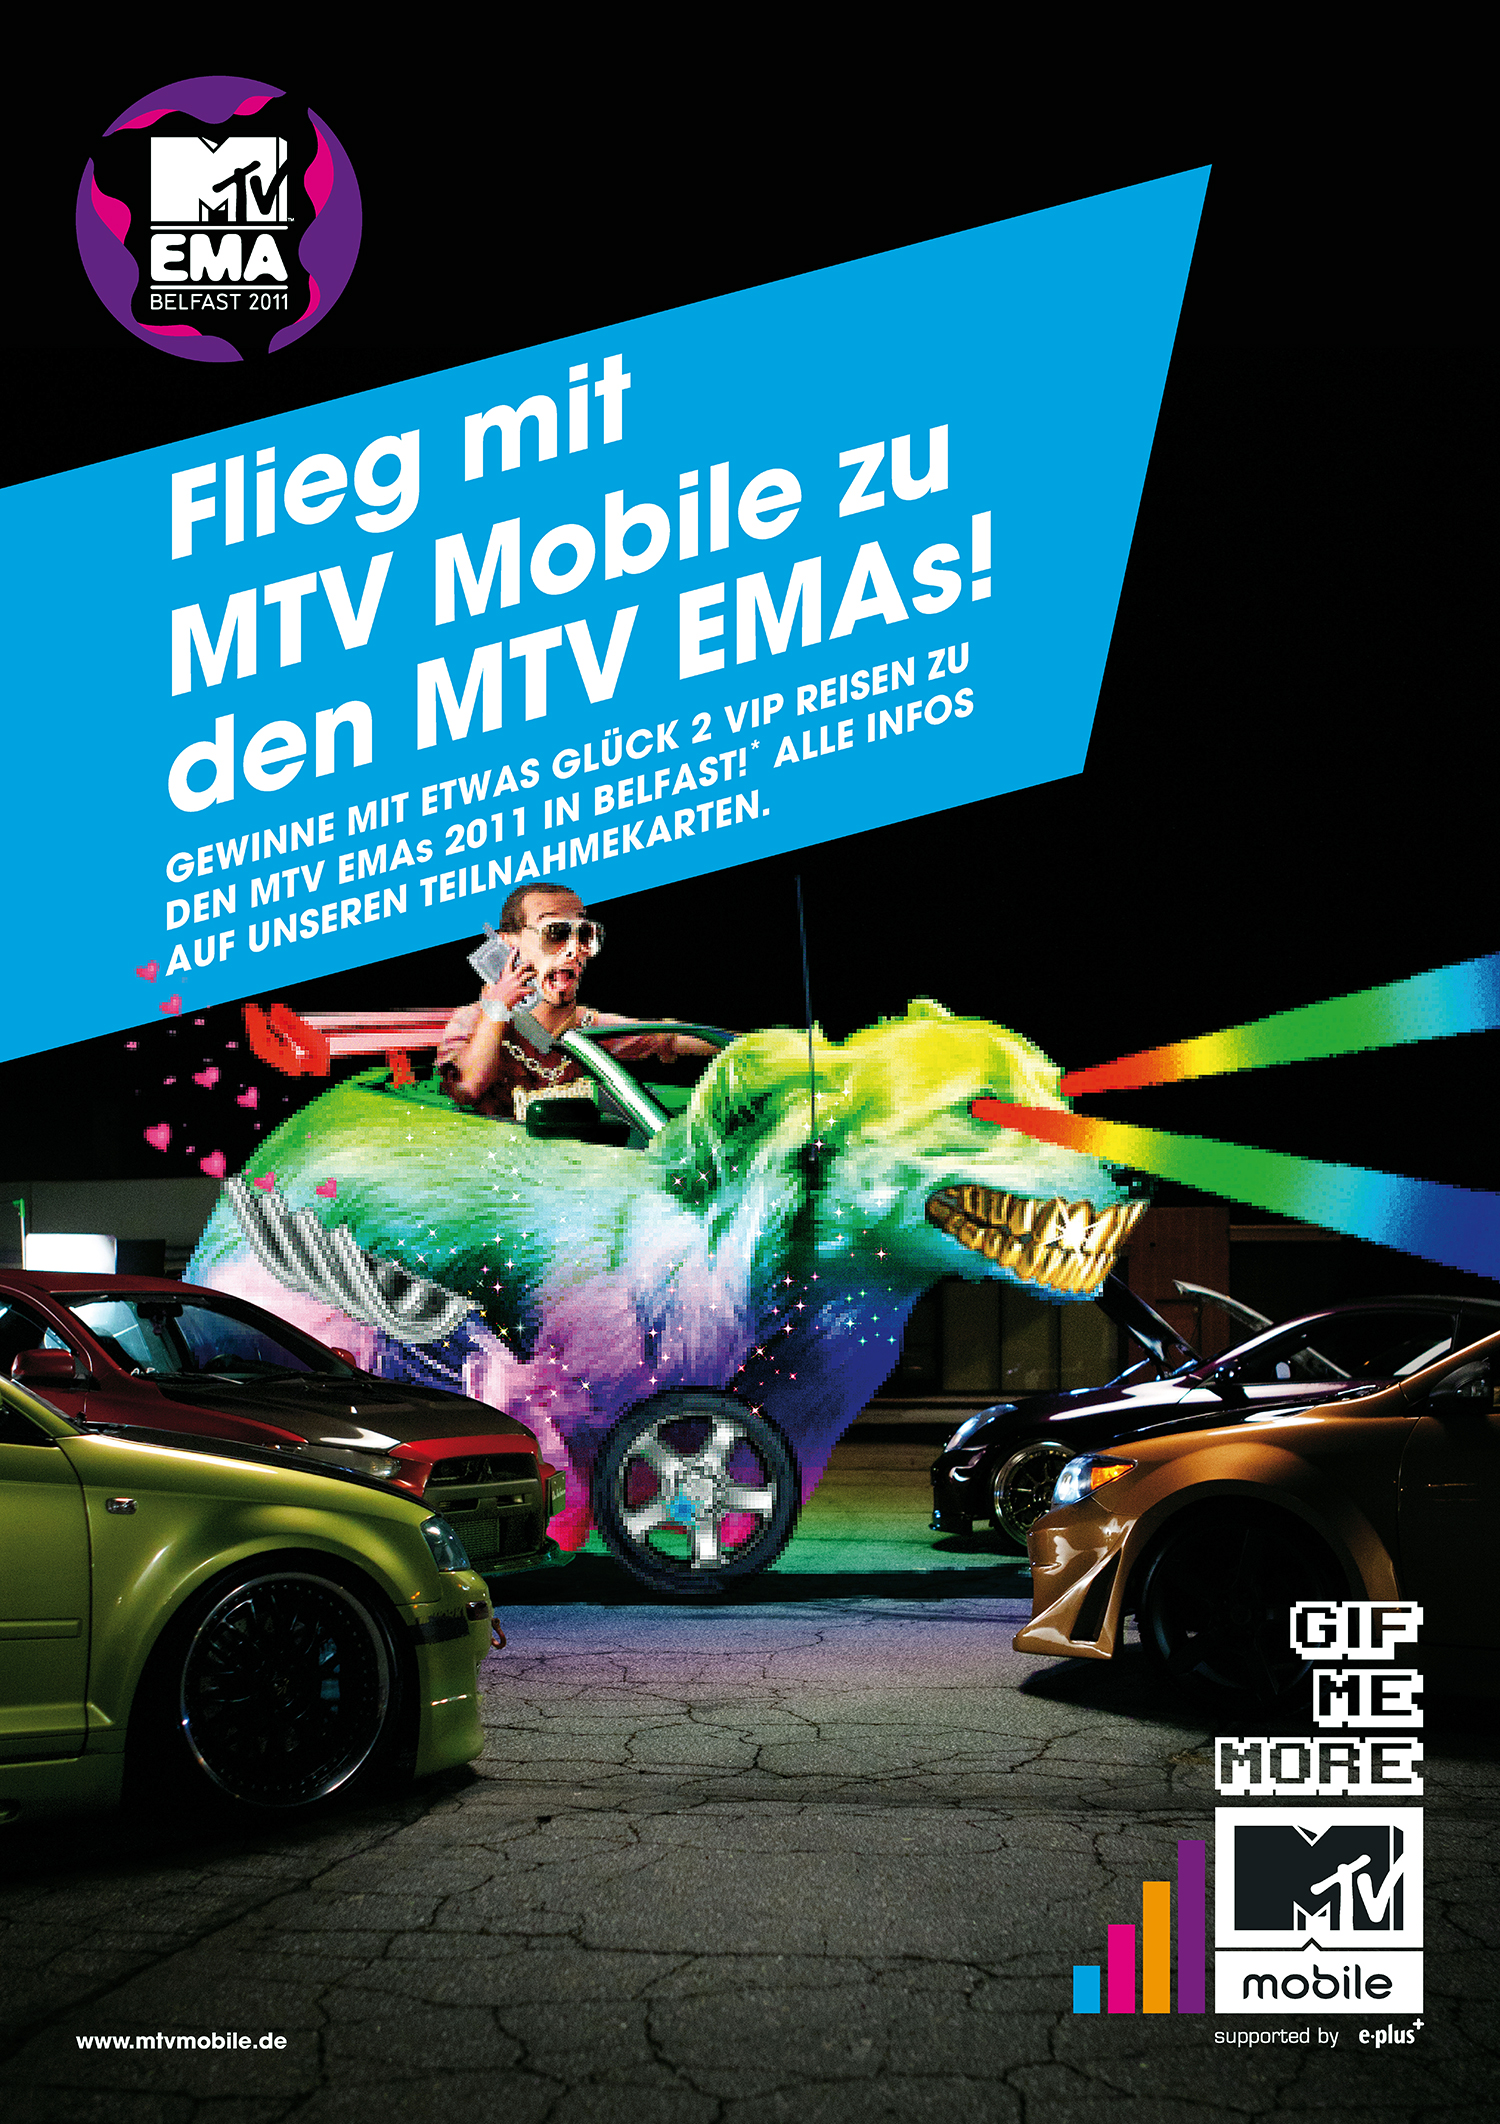 rbtq_Illustration_Seiser_Illustratorin_Hamburg_MTV_EMA_Print_Design_Plakat_01.jpg